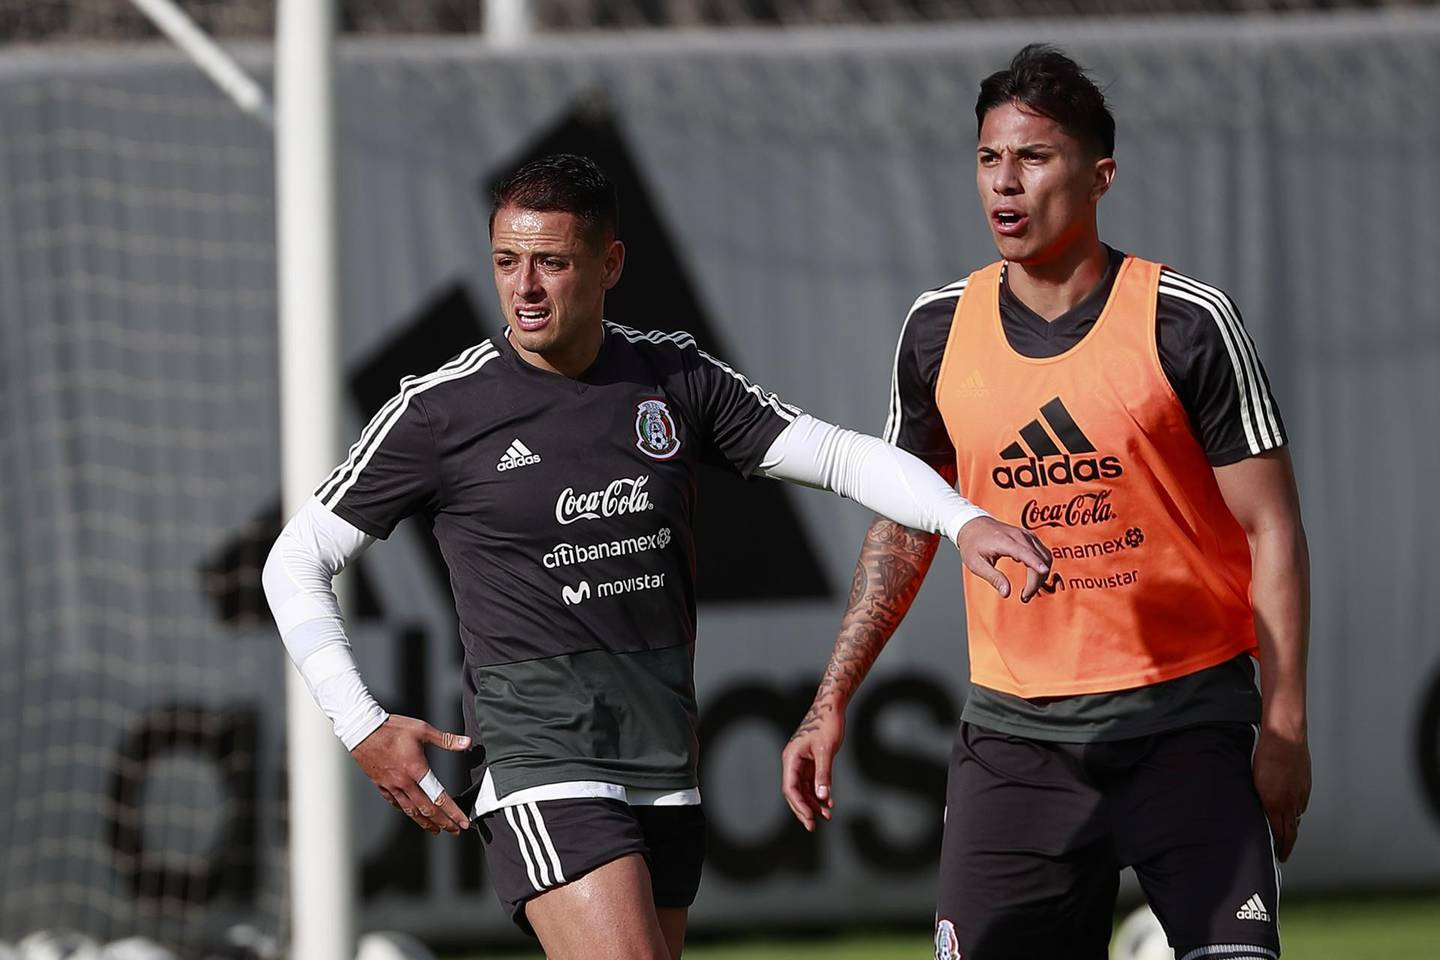 epa06779546 Mexican soccer players Javier Hernandez (L) and Carlos Salcedo (R) train with their team at the High Performance Center in Mexico City, Mexico, 01 June 2018. The Mexican national soccer team will play a friendly match against Scotland at the Azteca stadium on 03 June 2018.  EPA/JOSE MENDEZ